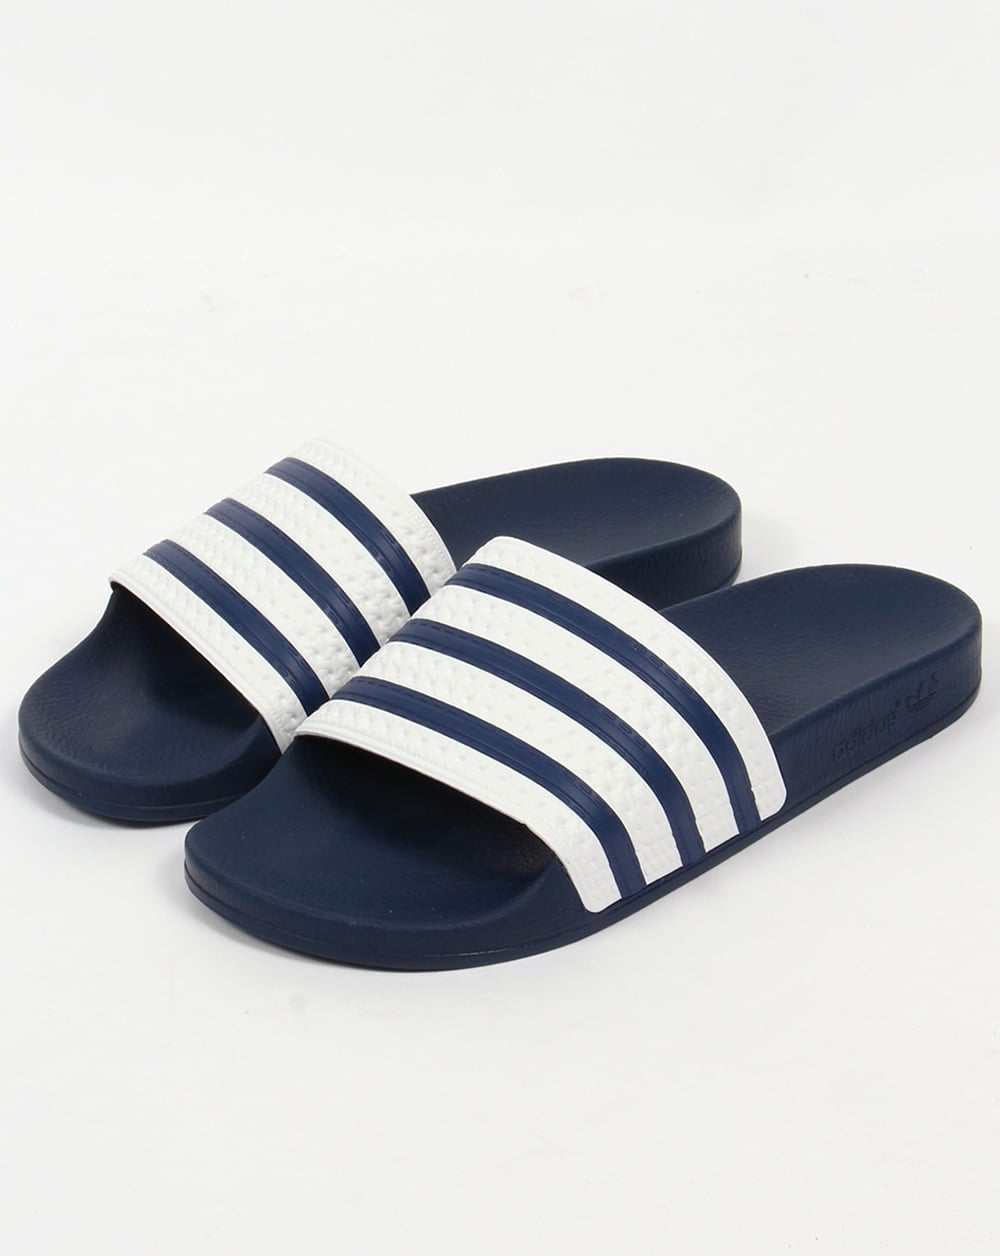 online store f05ce 2a3bb adidas Trainers Adidas Adilette Sliders WhiteNavy